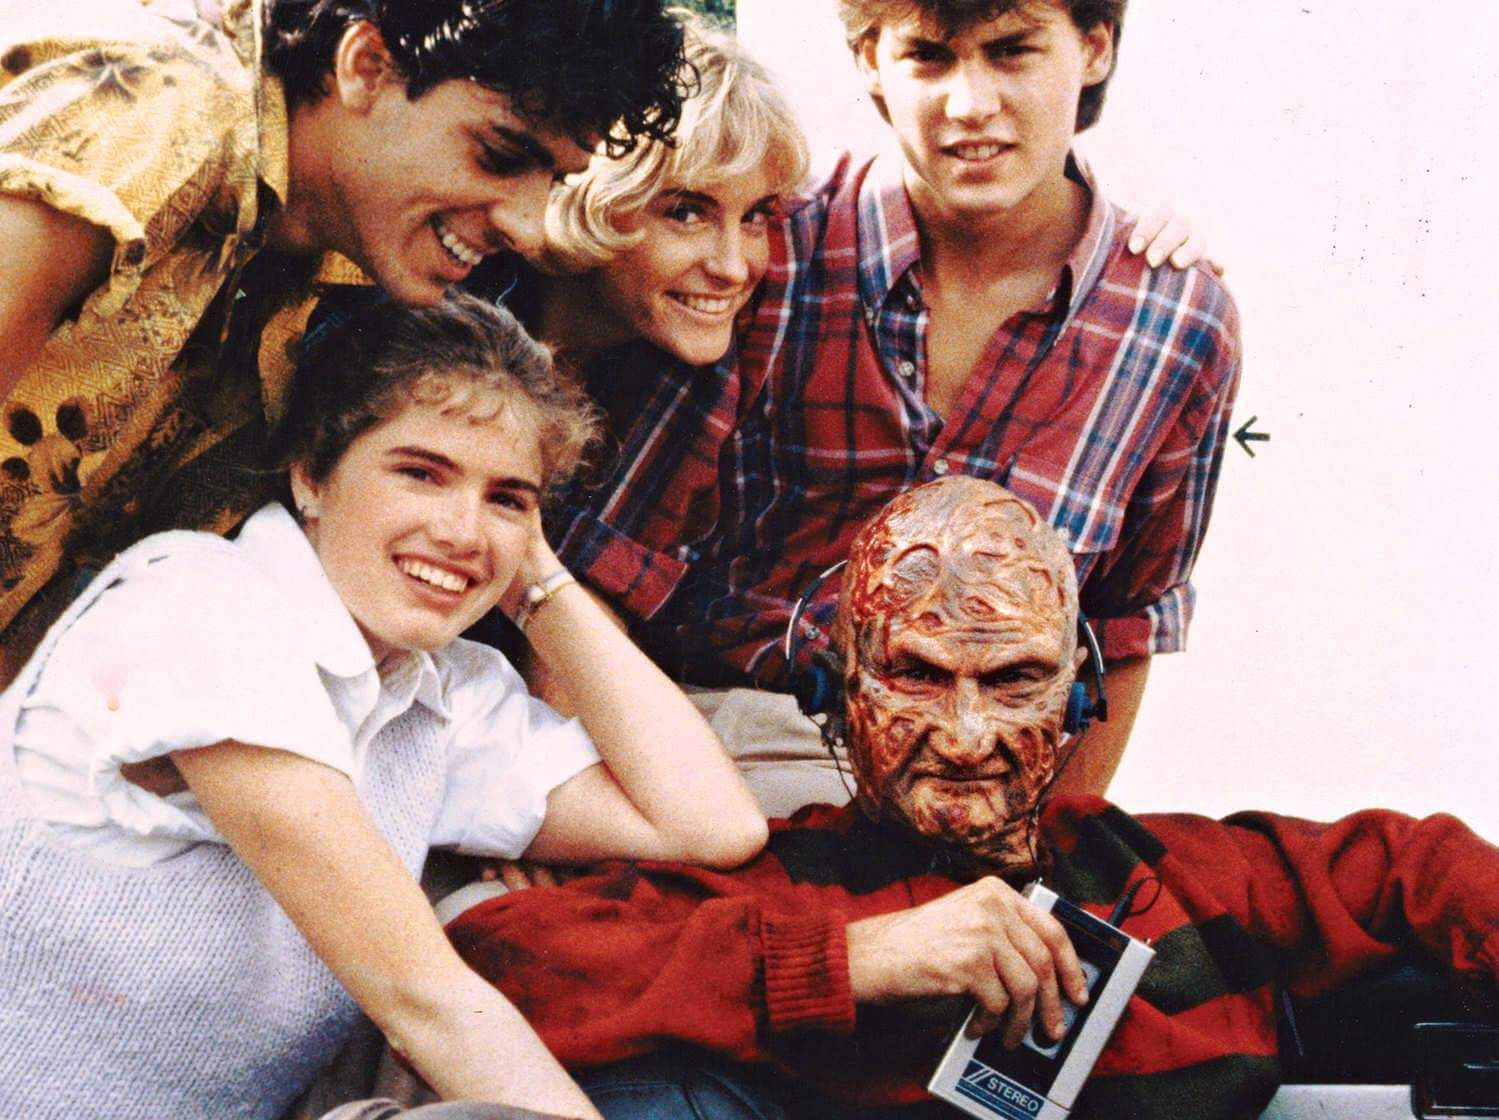 Behind The Scenes With The Cast Of A Nightmare On Elm Street 1984